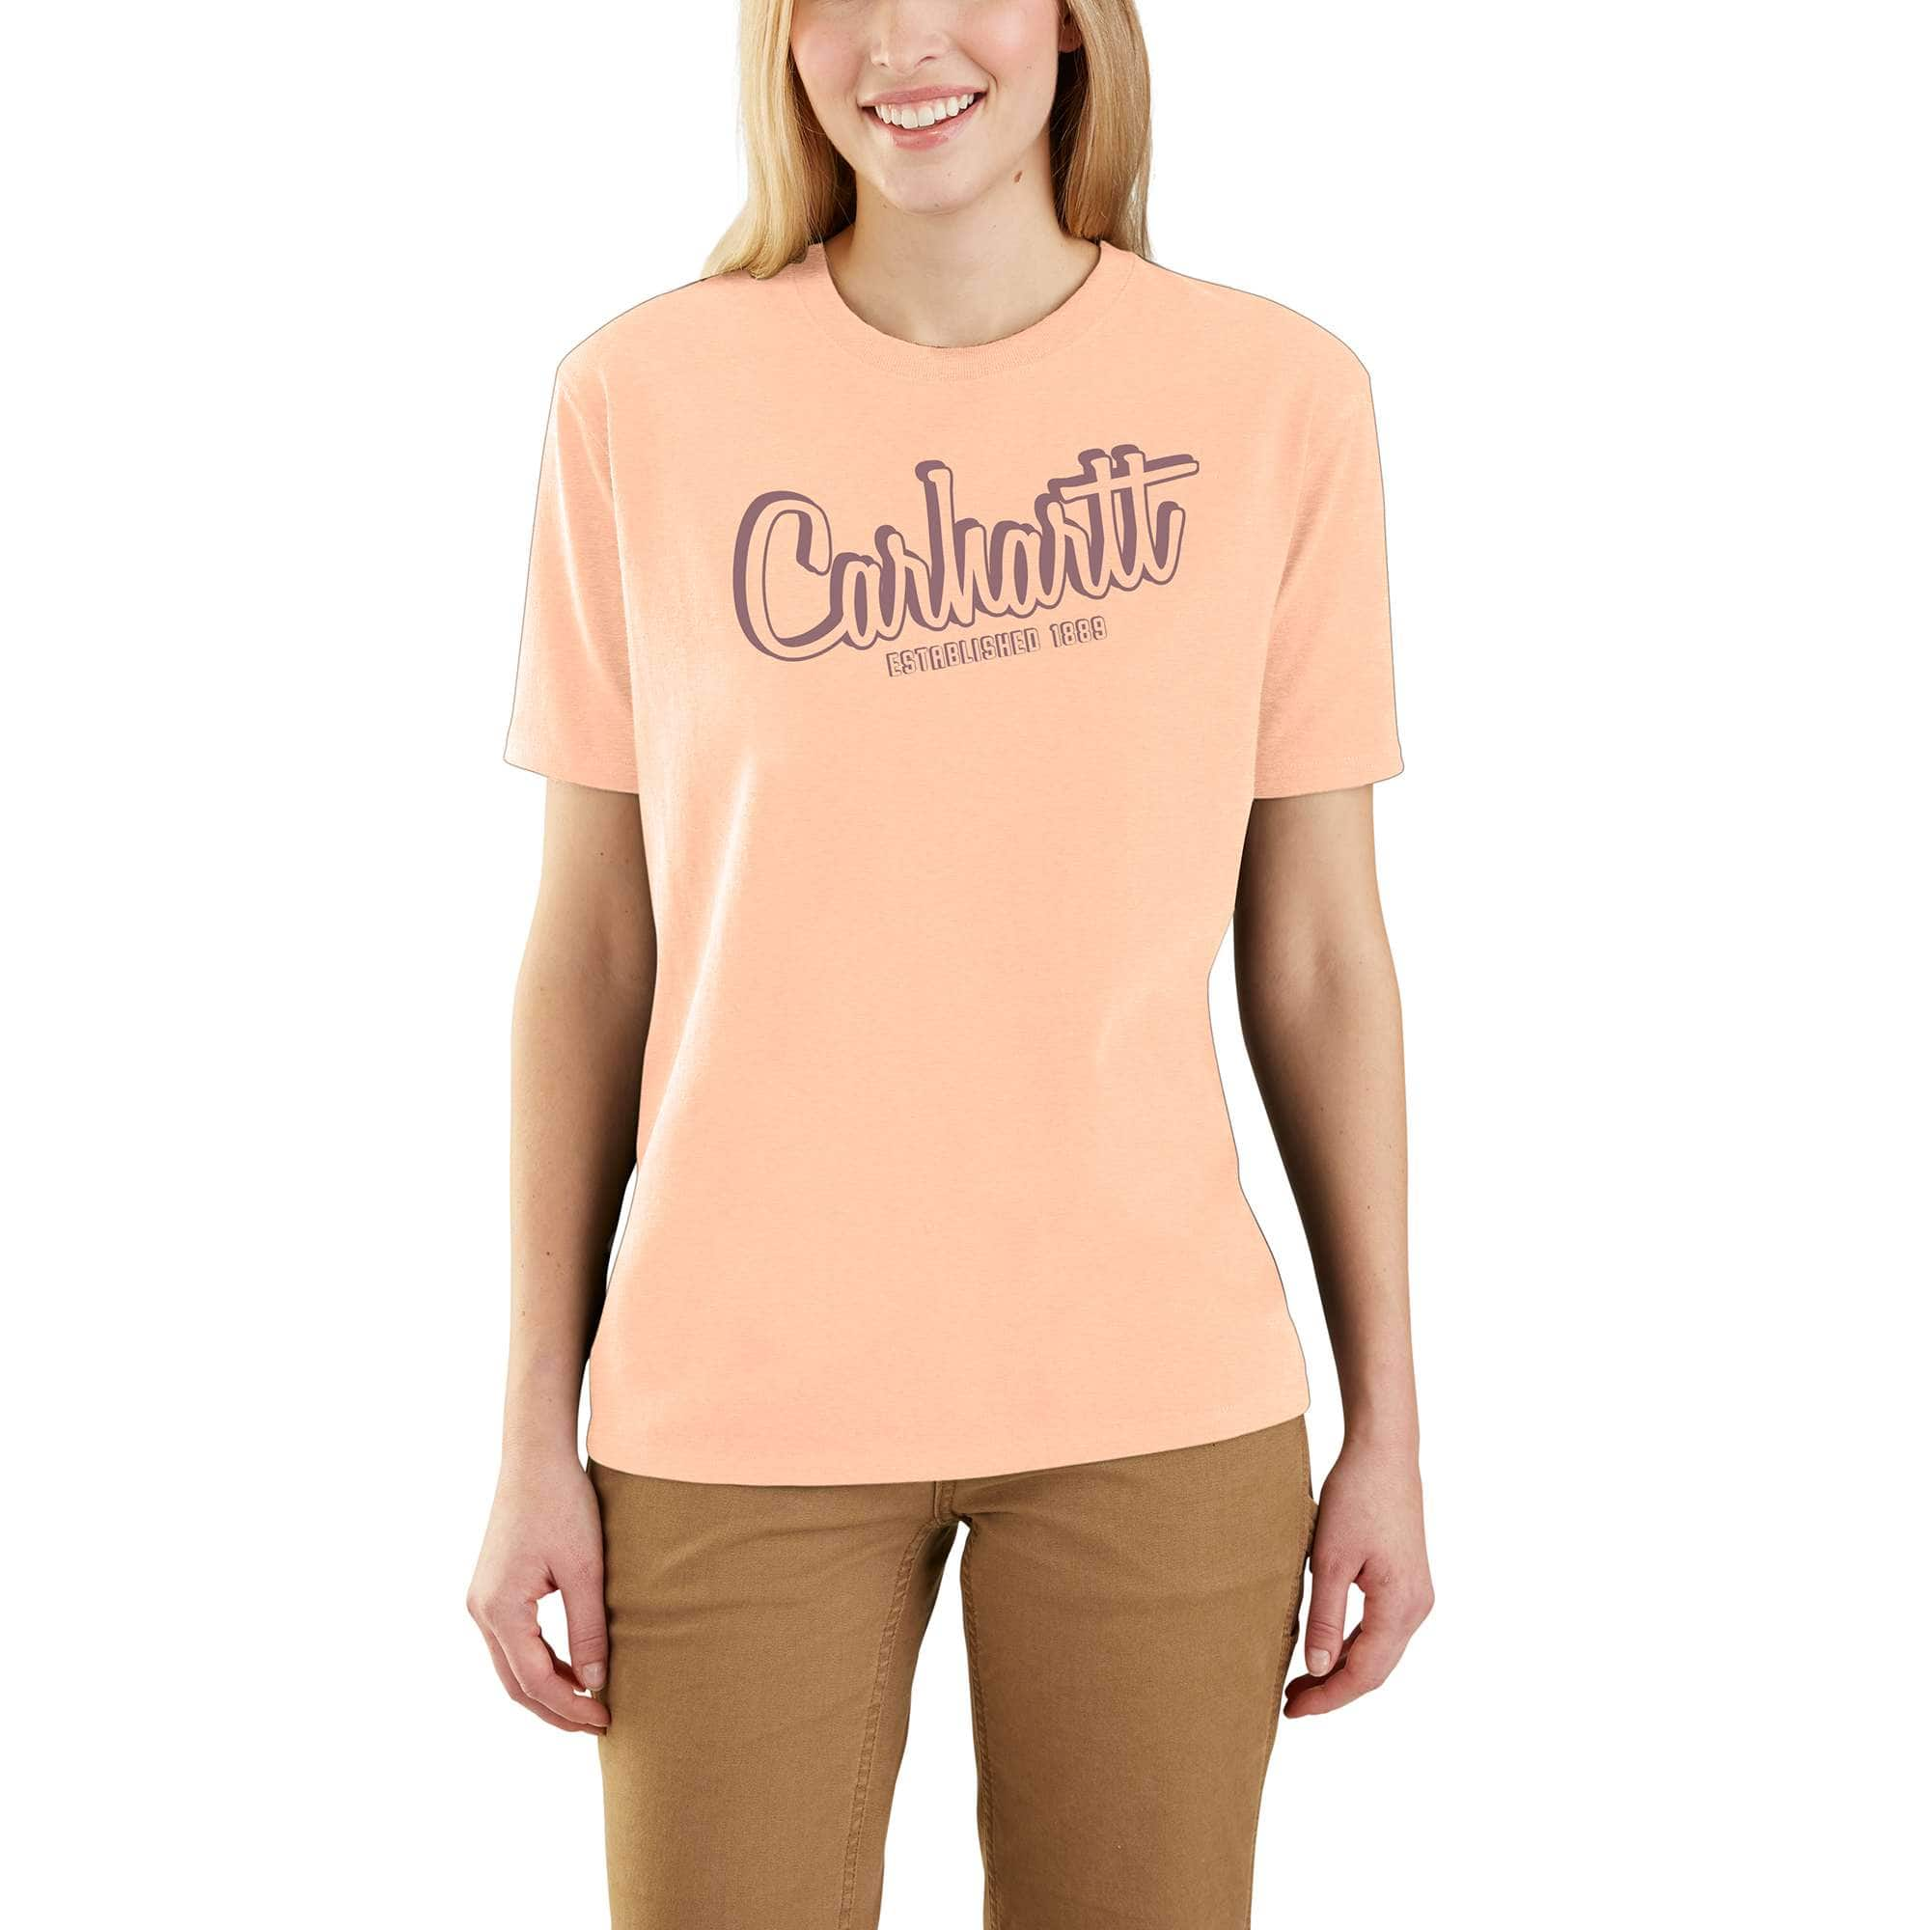 Picture of Loose Fit Heavyweight Short-Sleeve Carhartt Graphic T-Shirt in Cantaloupe Heather